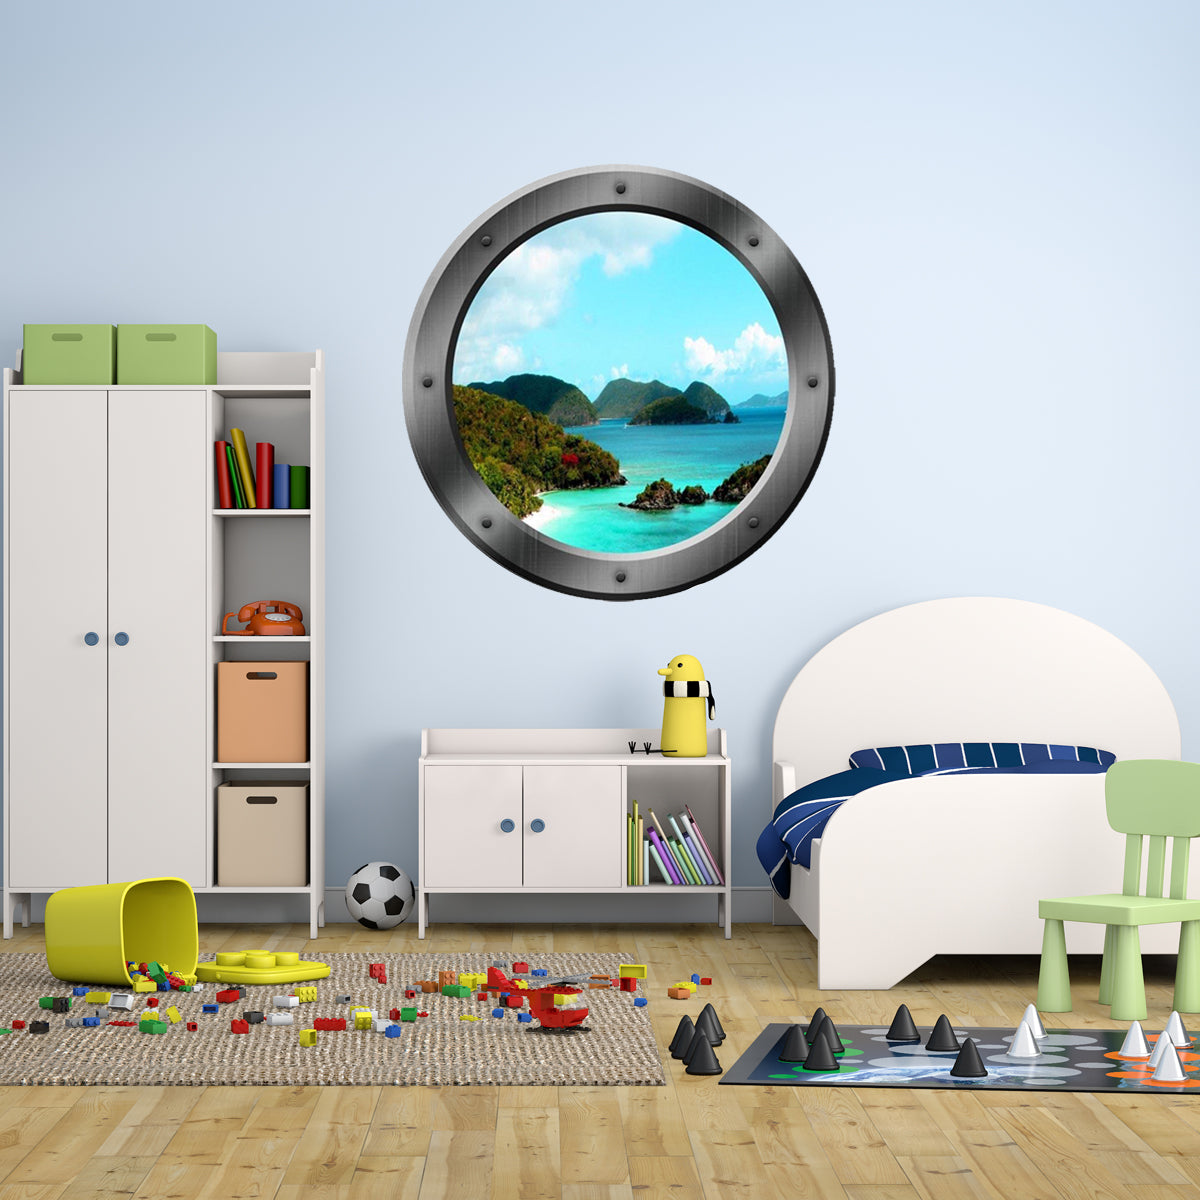 VWAQ Ocean Mountain View Peel and Stick Porthole Vinyl Wall Decal - P08